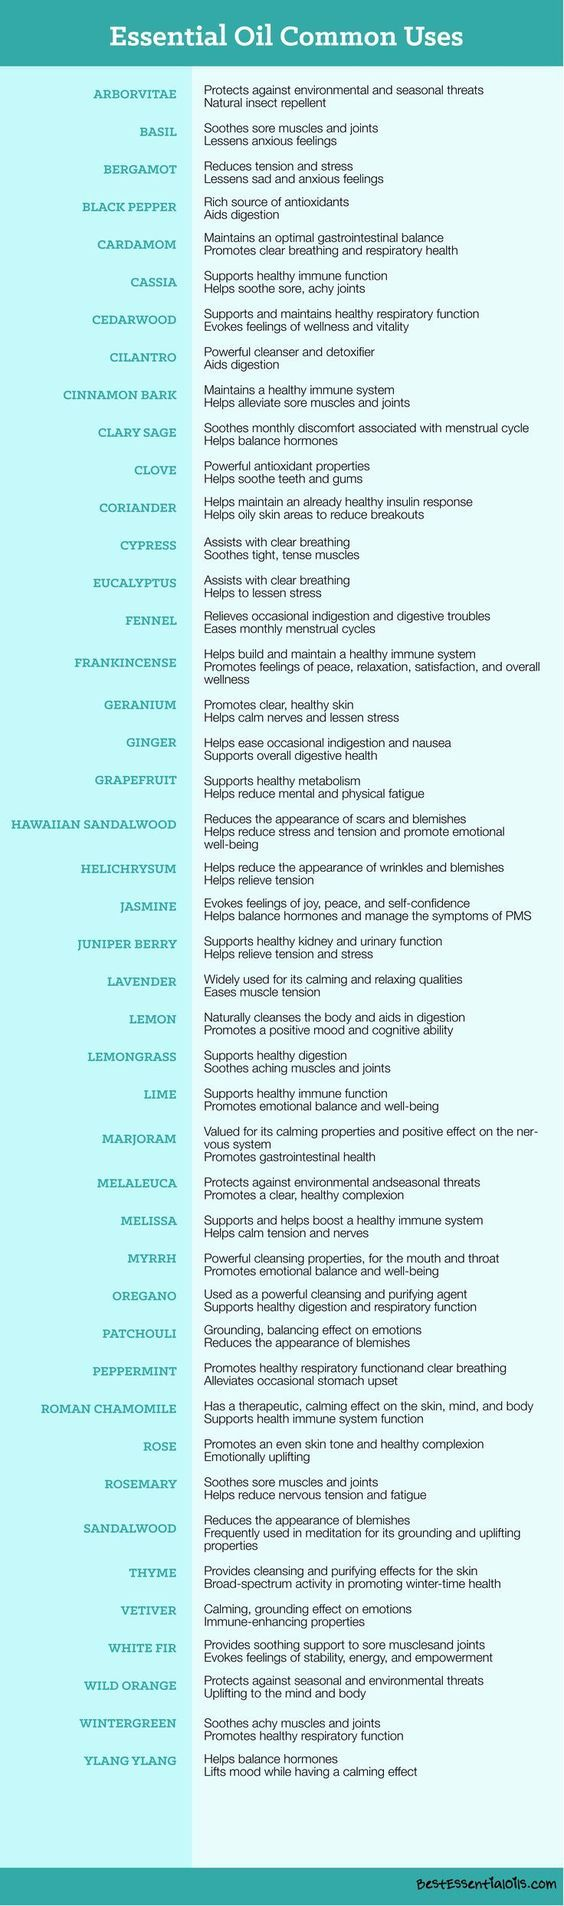 Essential Oils Uses Chart for Essential Oils and Their Uses 1